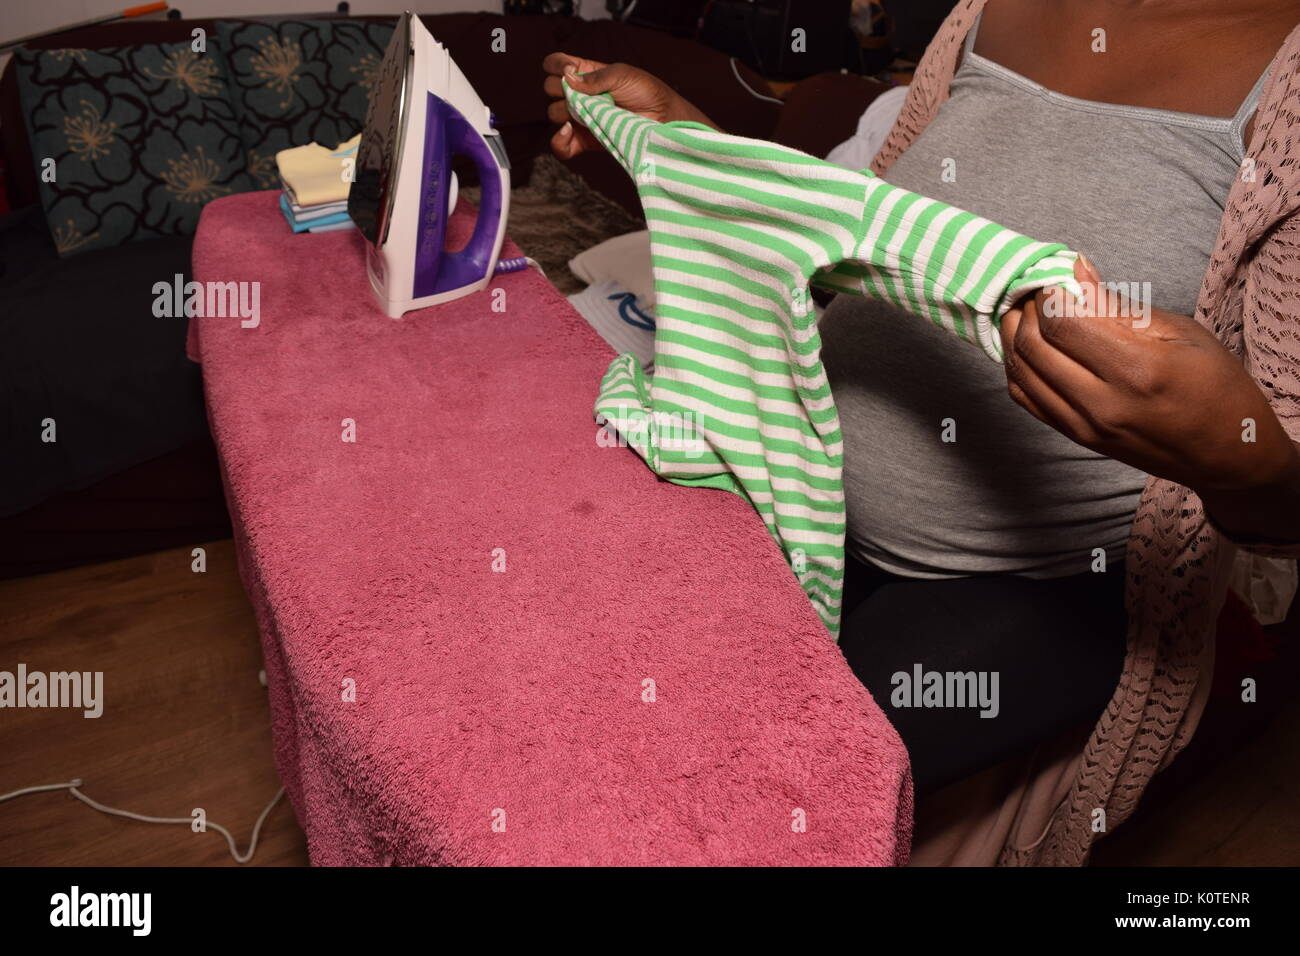 Pregnant female ironing clothes - Stock Image